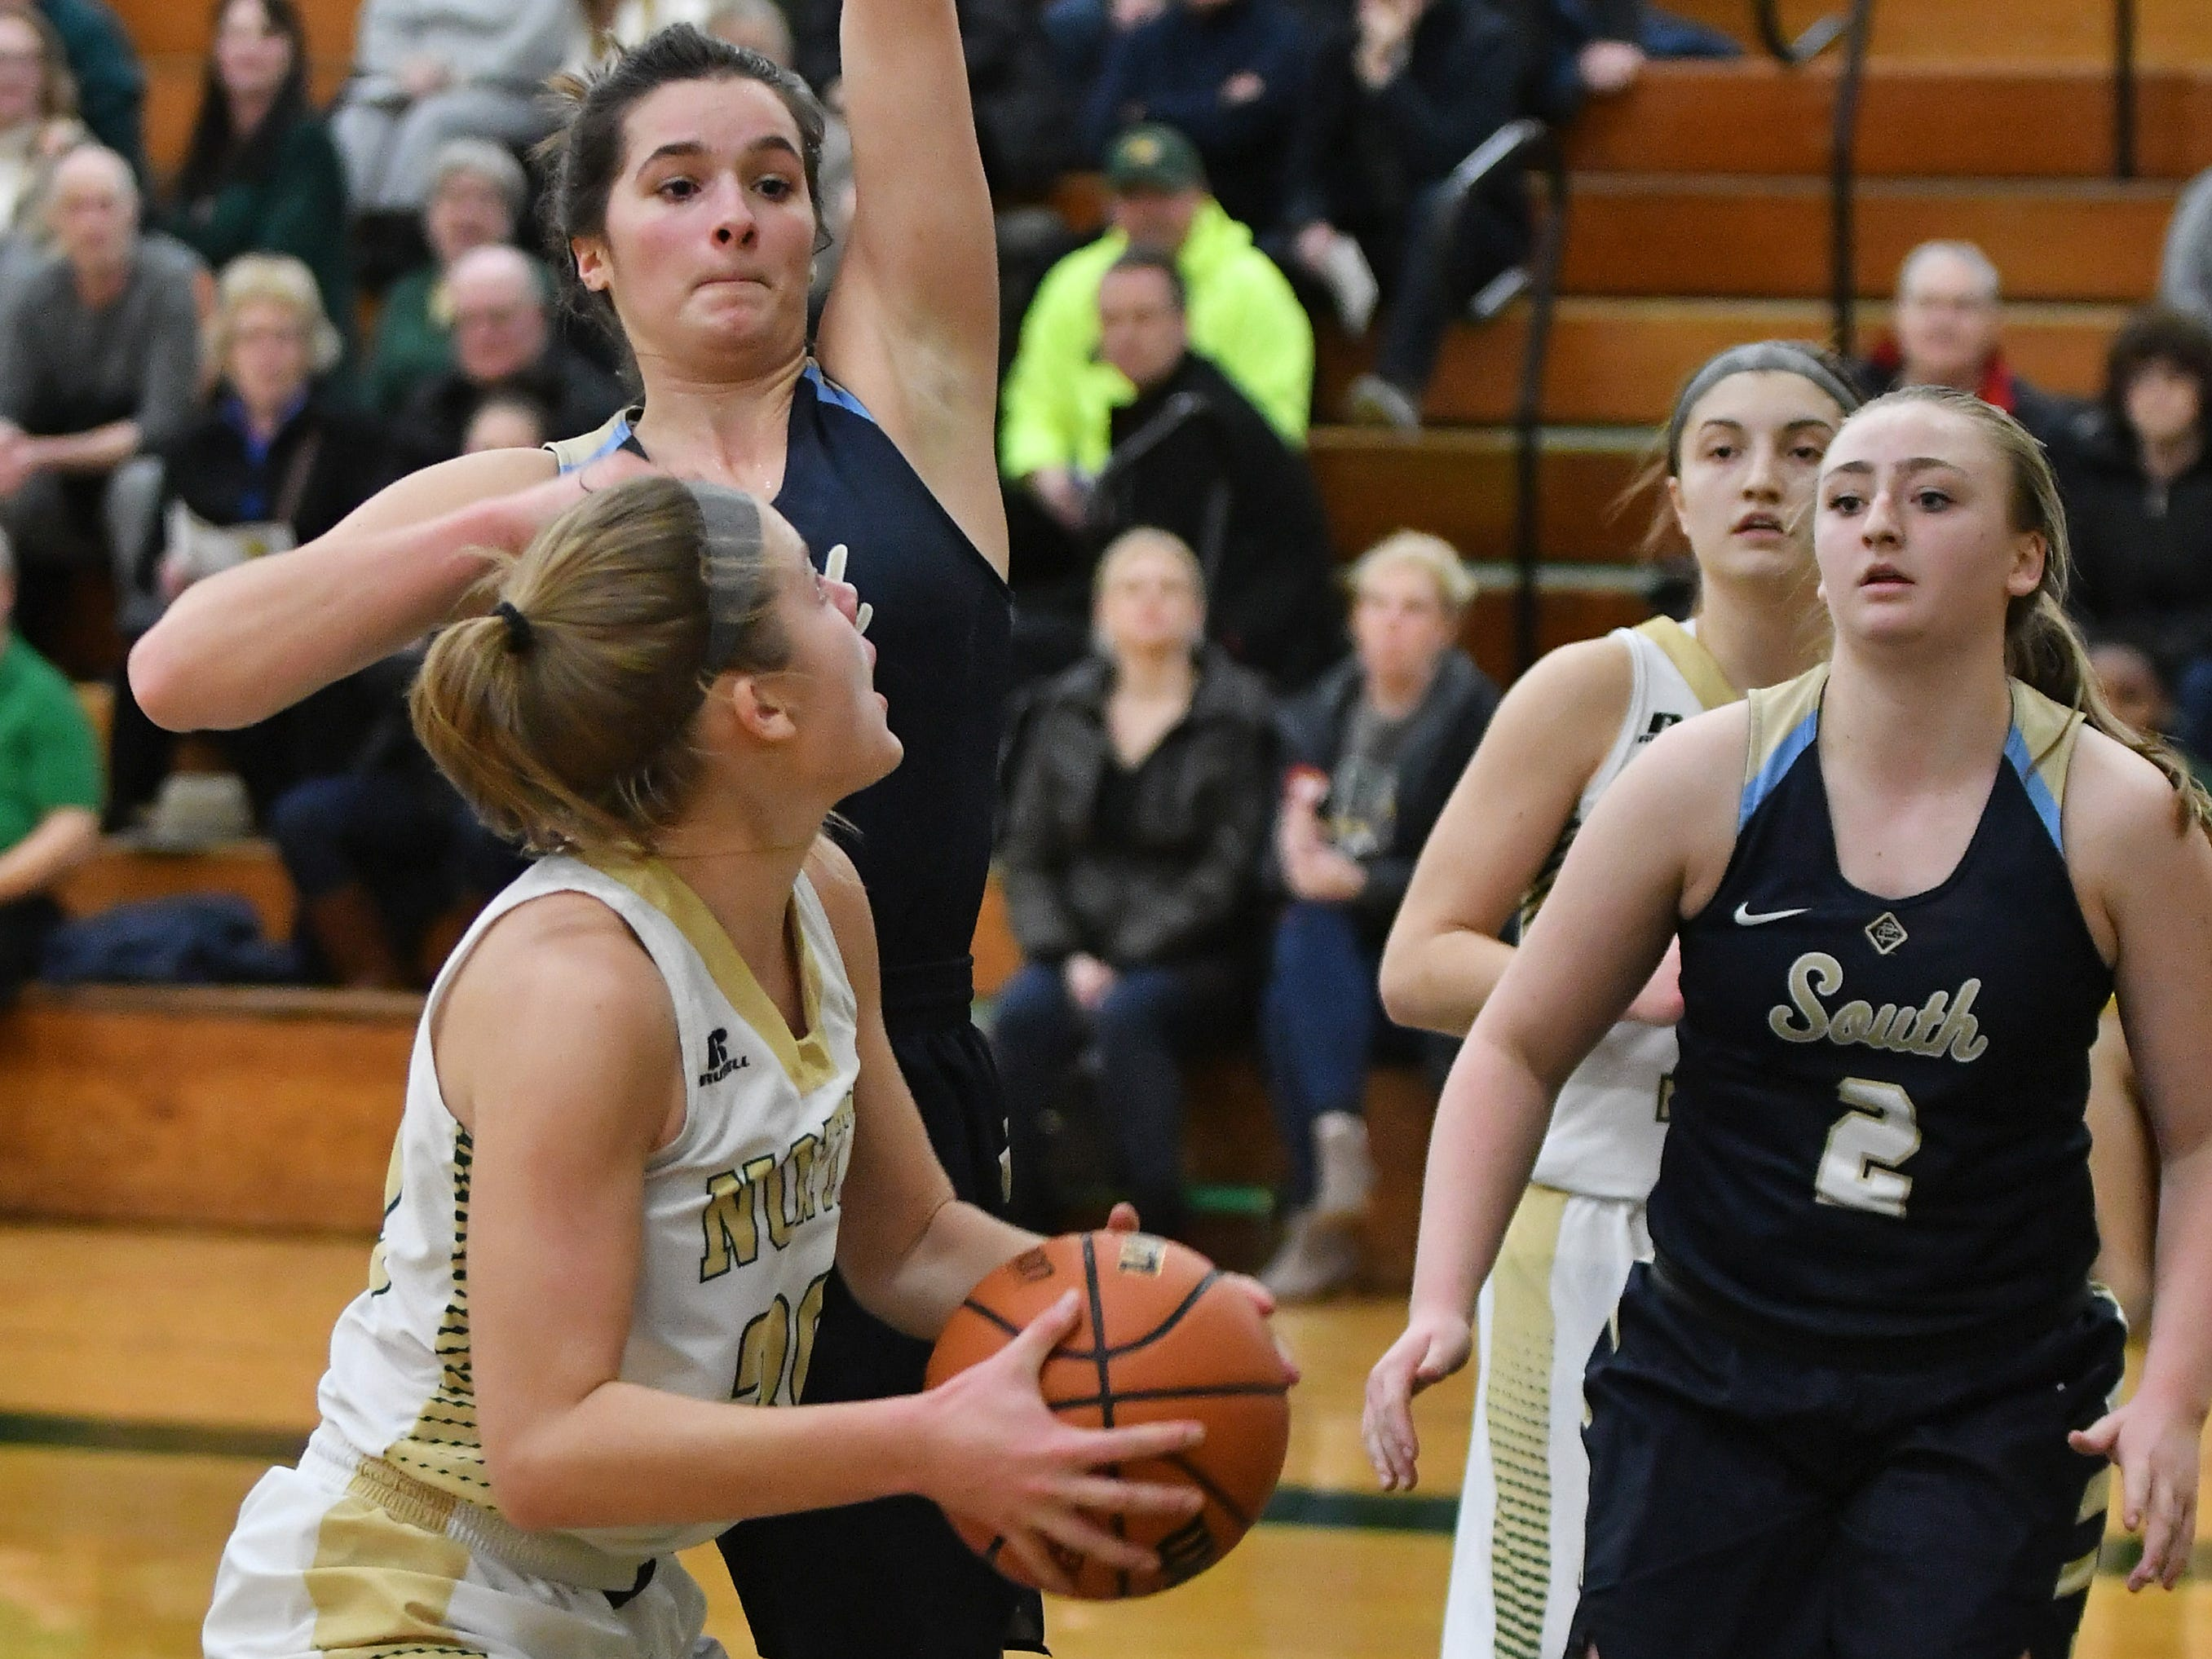 Grosse Pointe South's Savannah Srebernak guards Grosse Pointe North's Evelyn Zacharias, in white, in the second quarter.